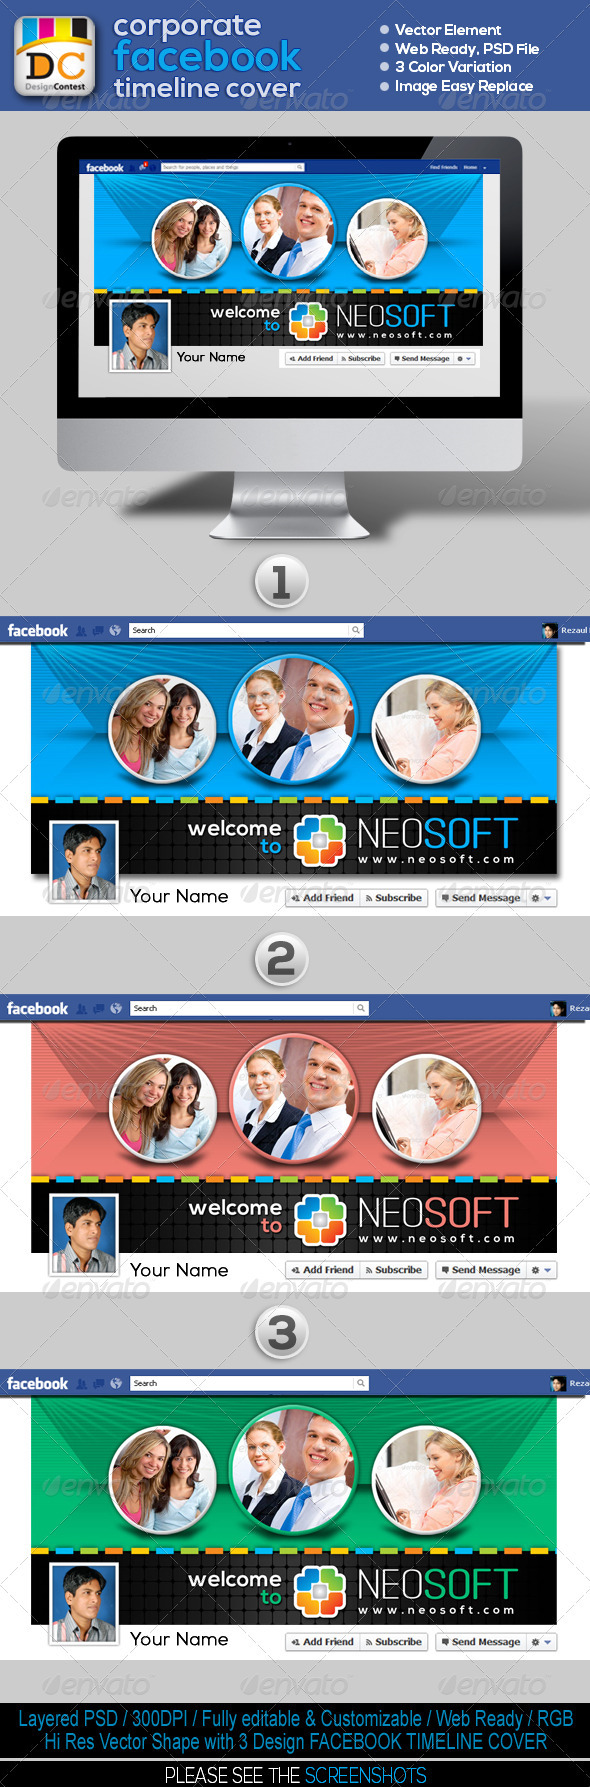 GraphicRiver NeoSoft Corporate FB Timeline Cover 3587525